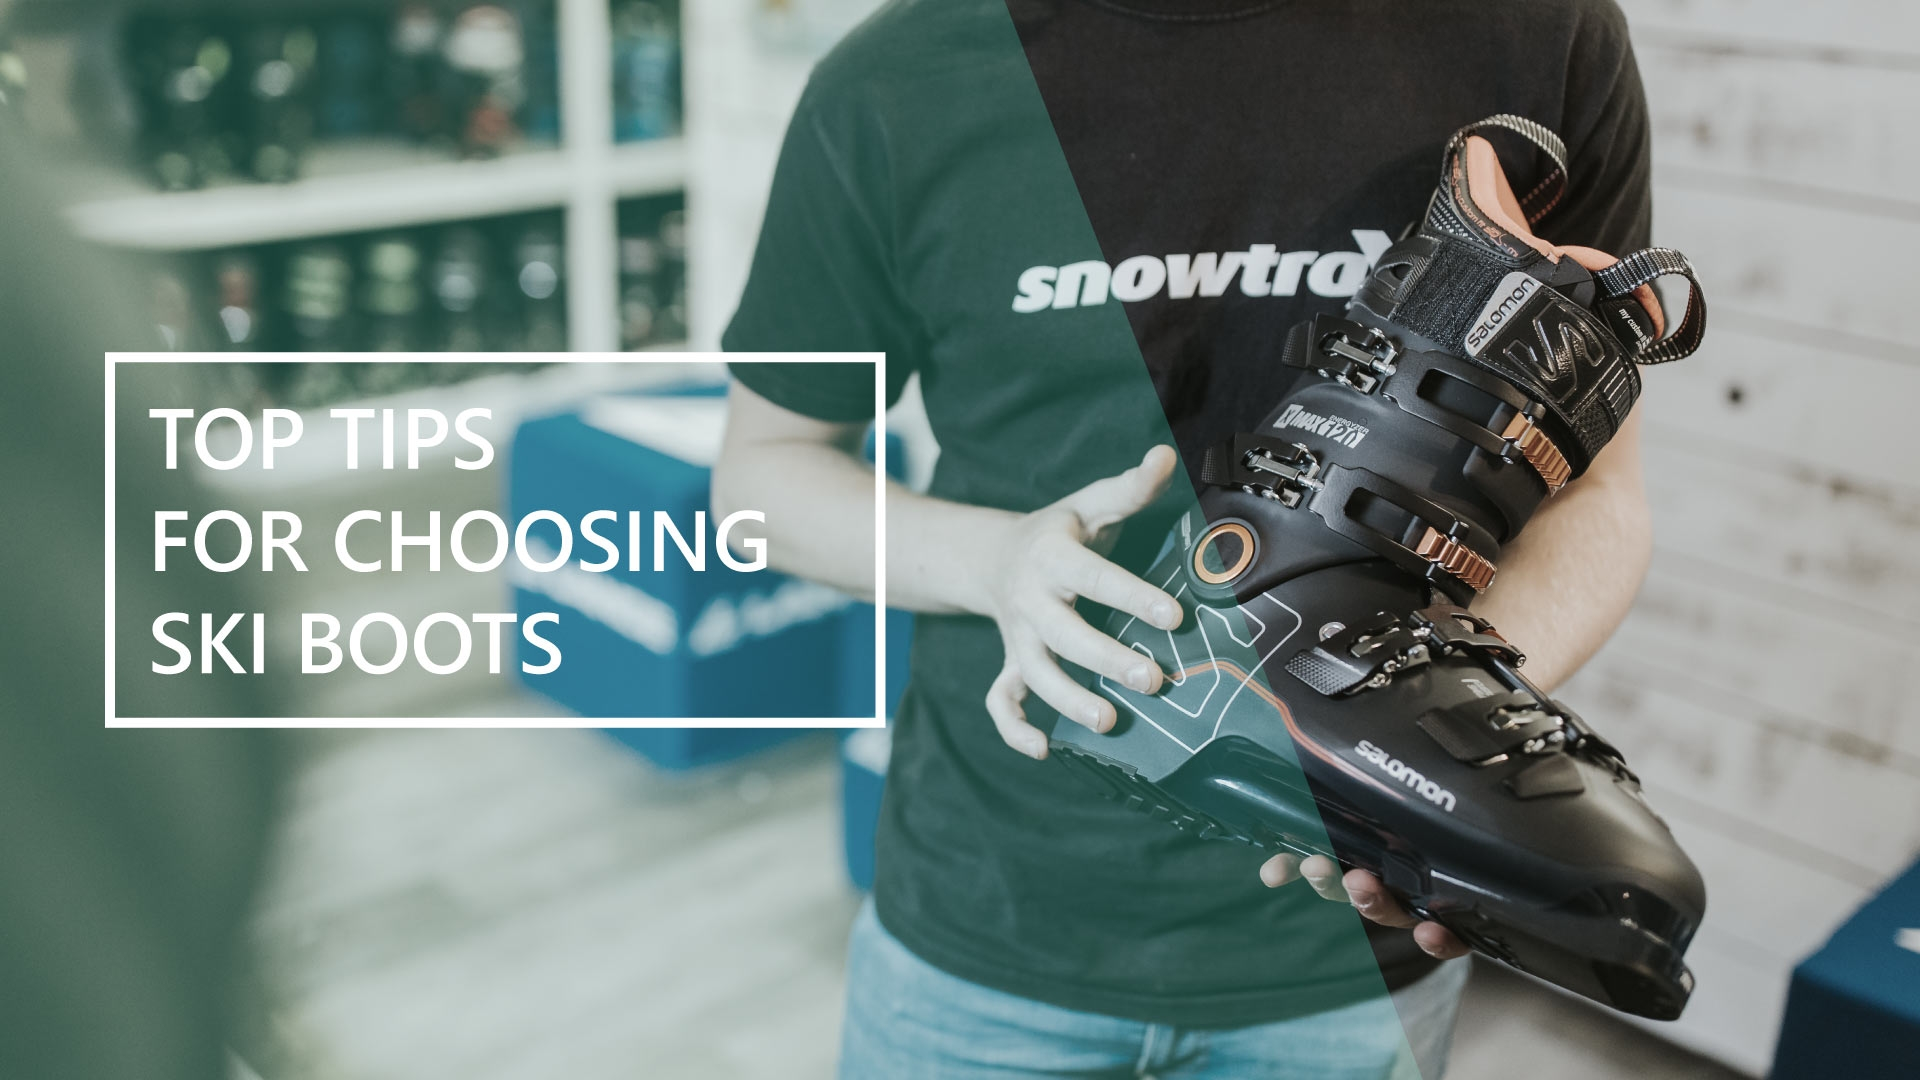 Top Tips for Choosing Ski Boots